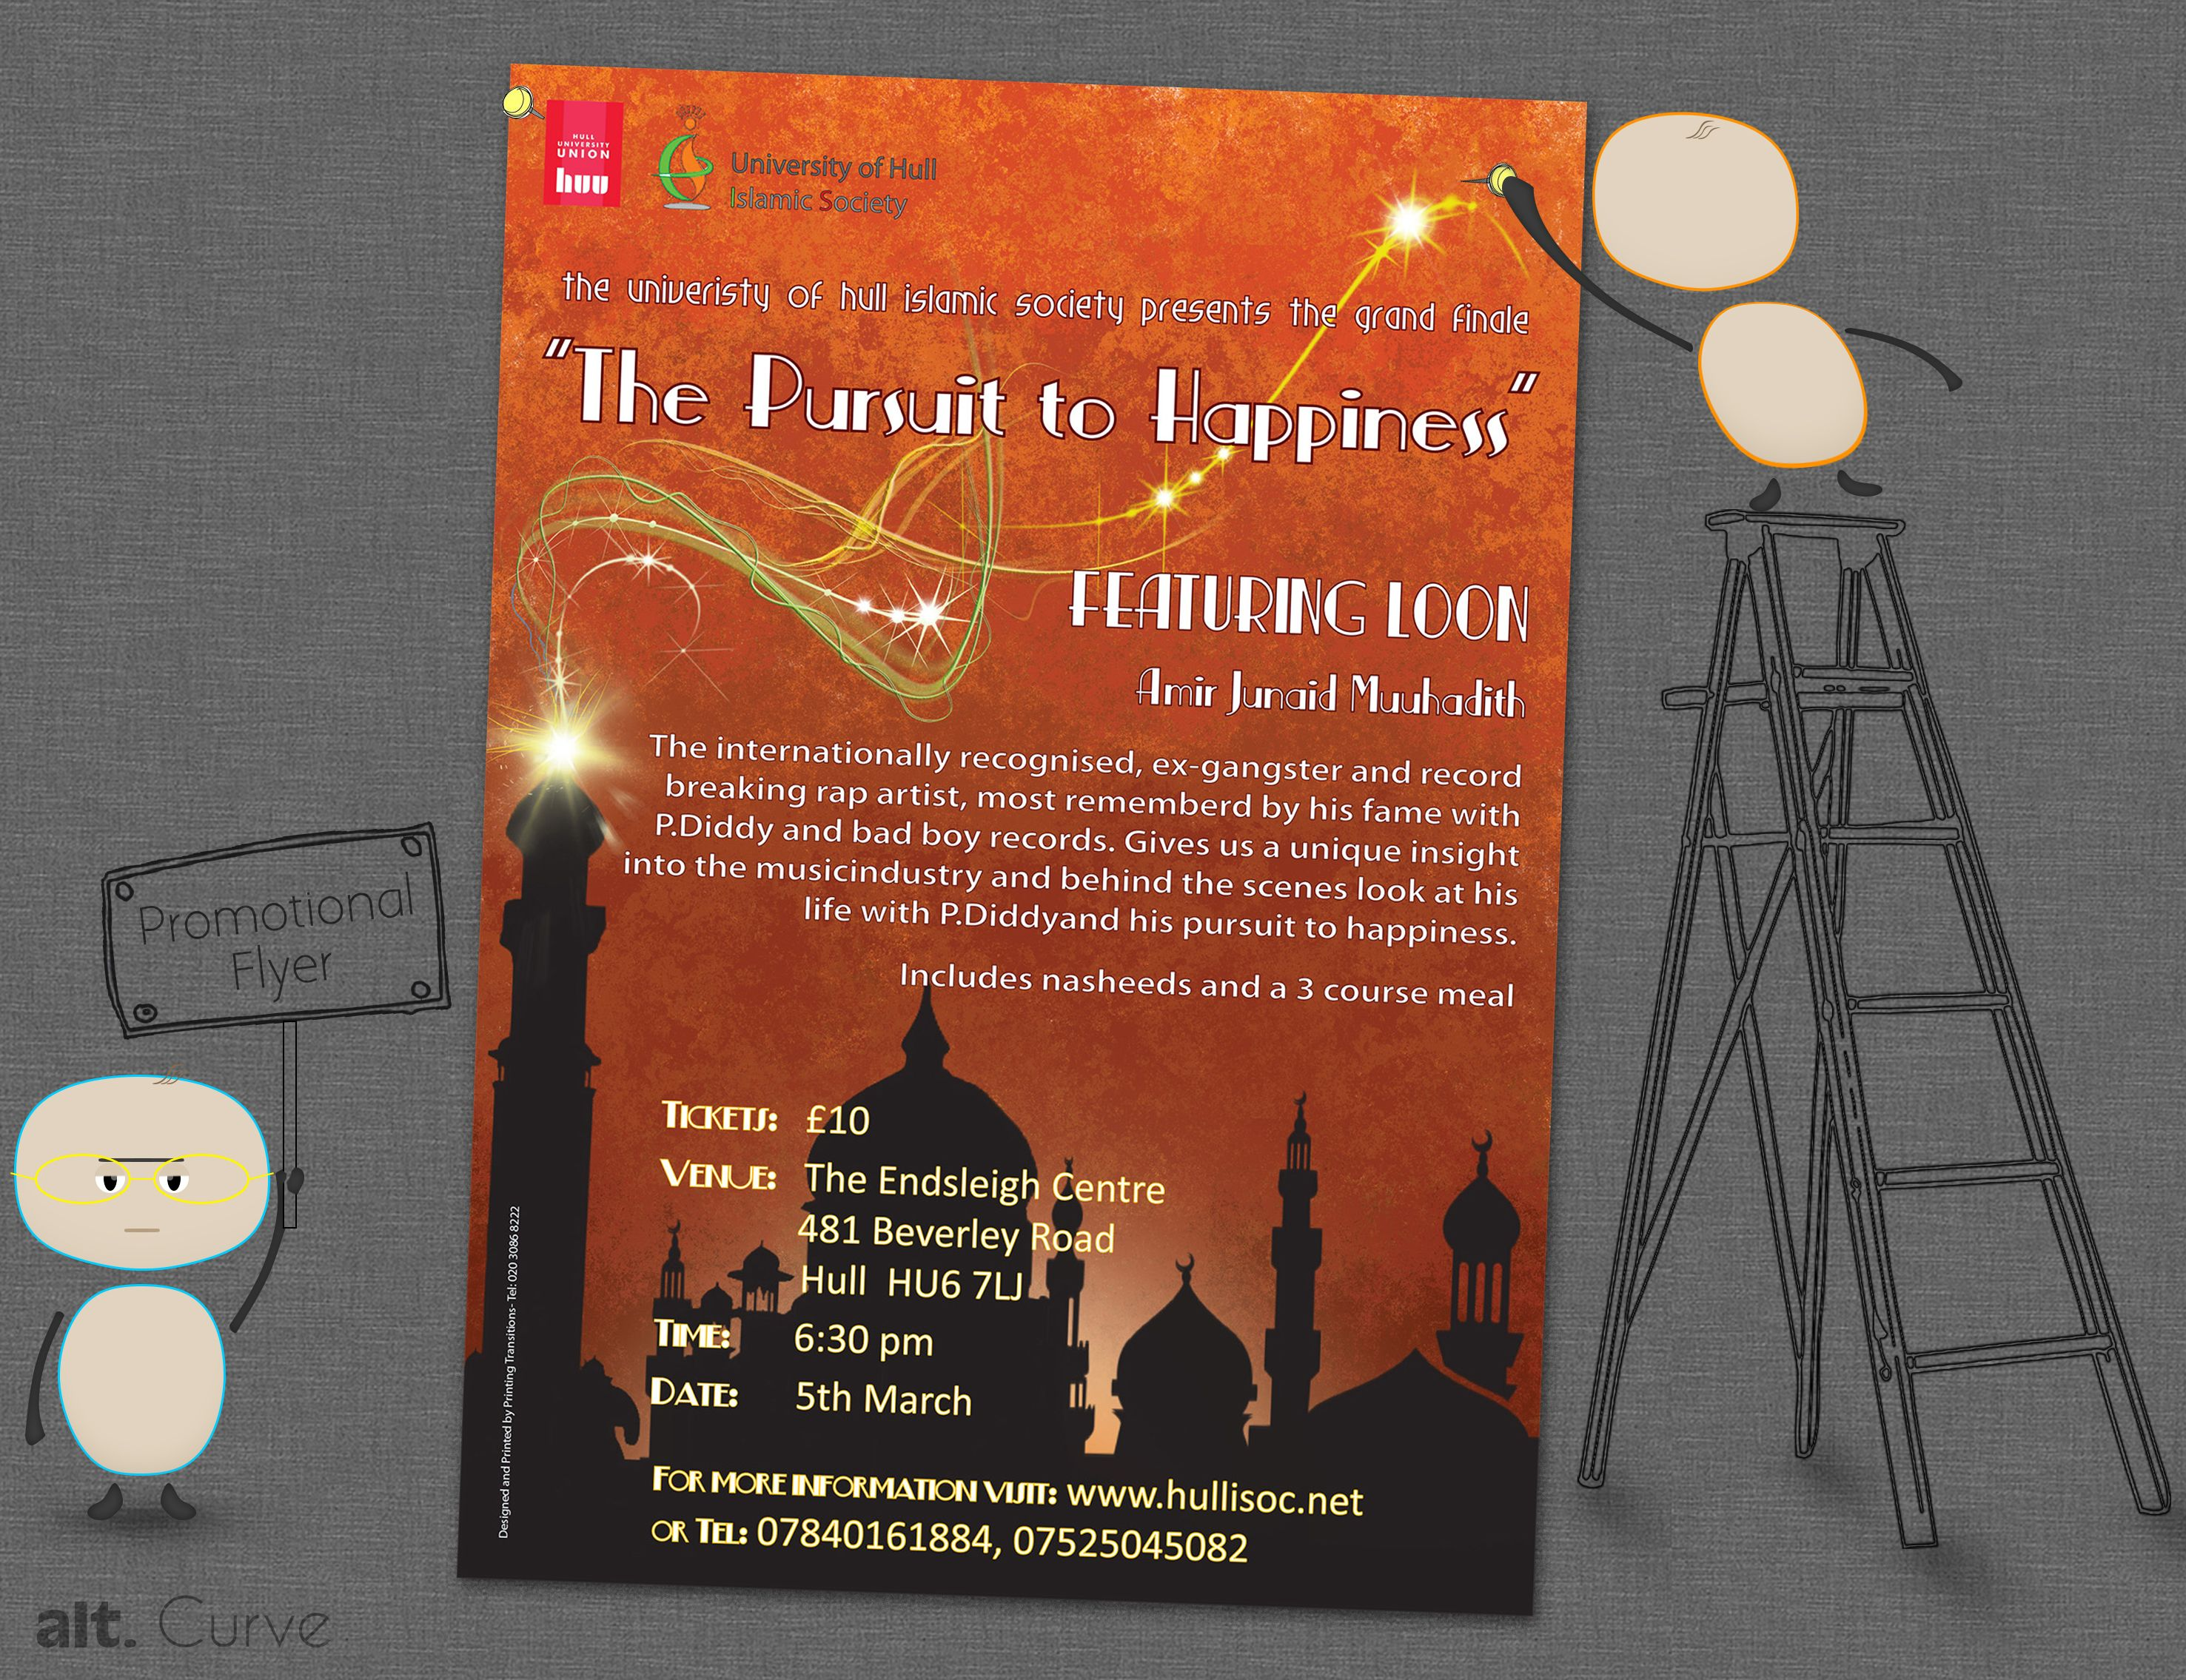 Islamic Promotional Flyer For A University Seminar  Flyer Ideas